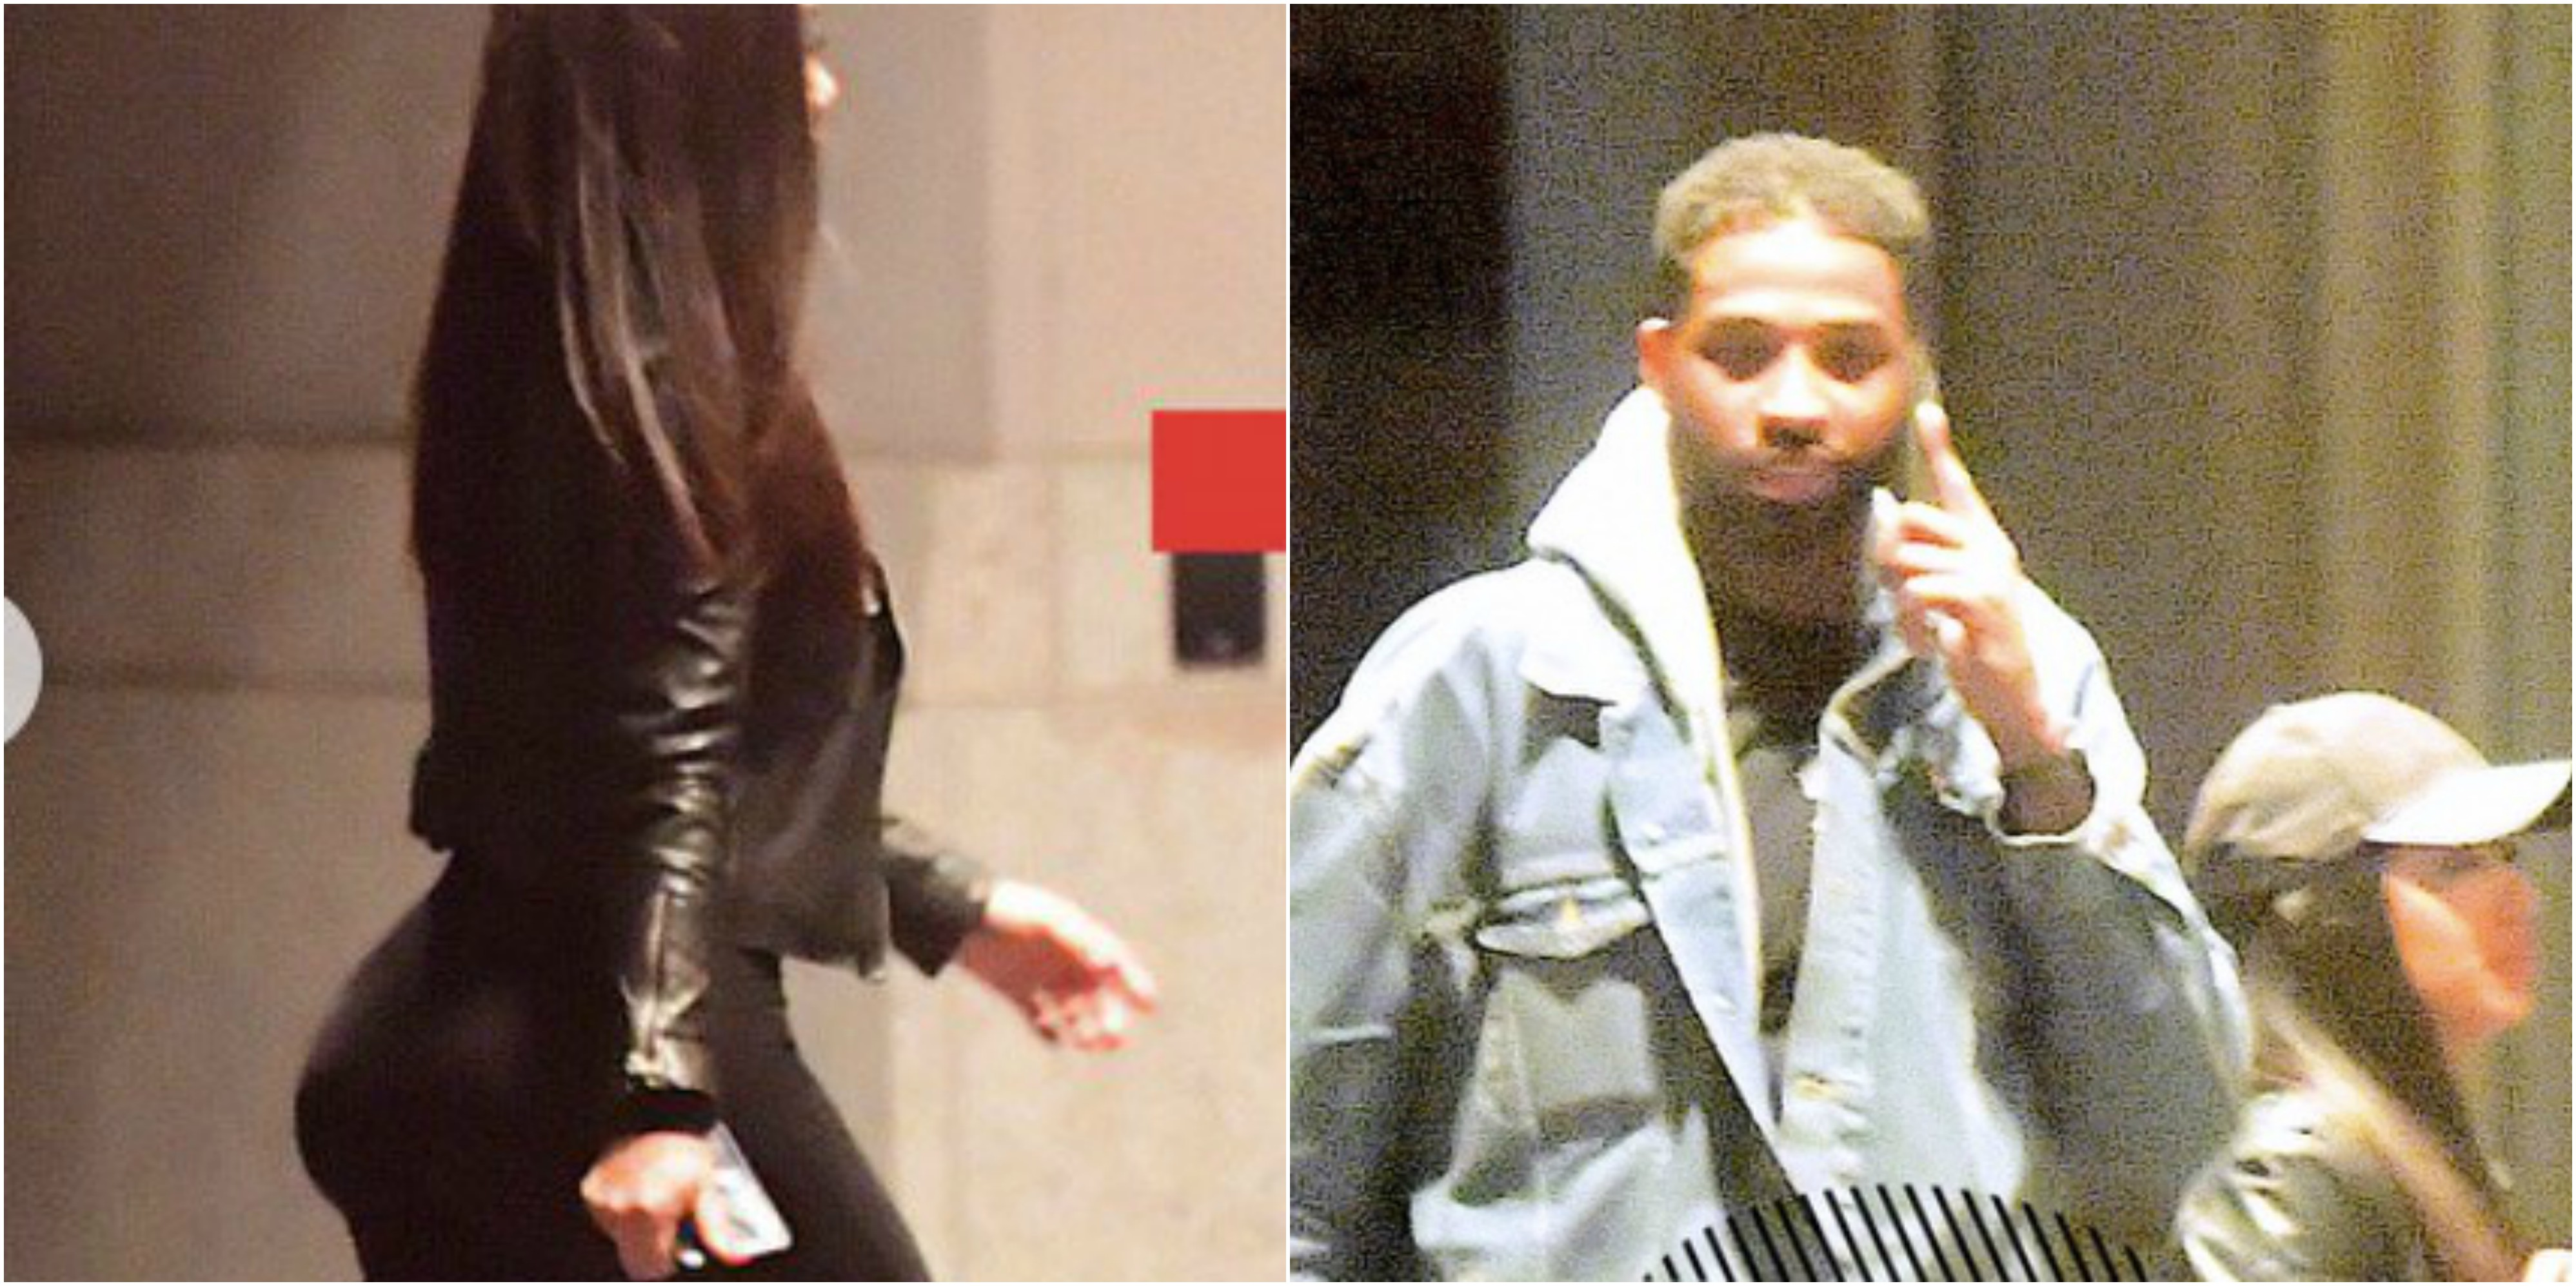 Total Pro Sports Tristan Thompson Spotted At Hotel With Ig